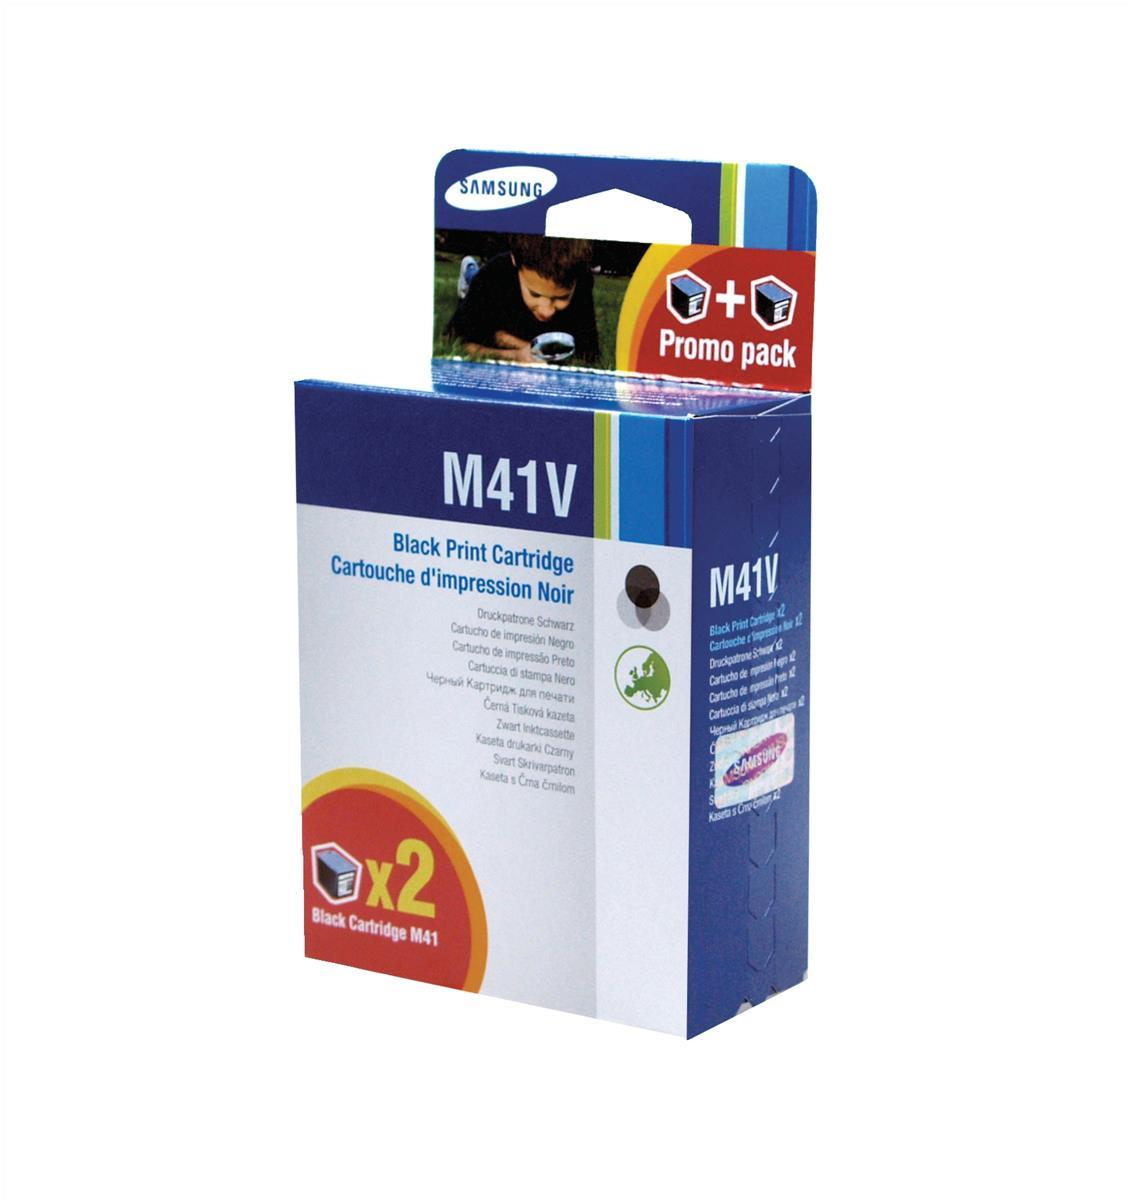 Samsung M41 Black Inkjet Cartridges (Pack of 2) INK-M41V/ELS